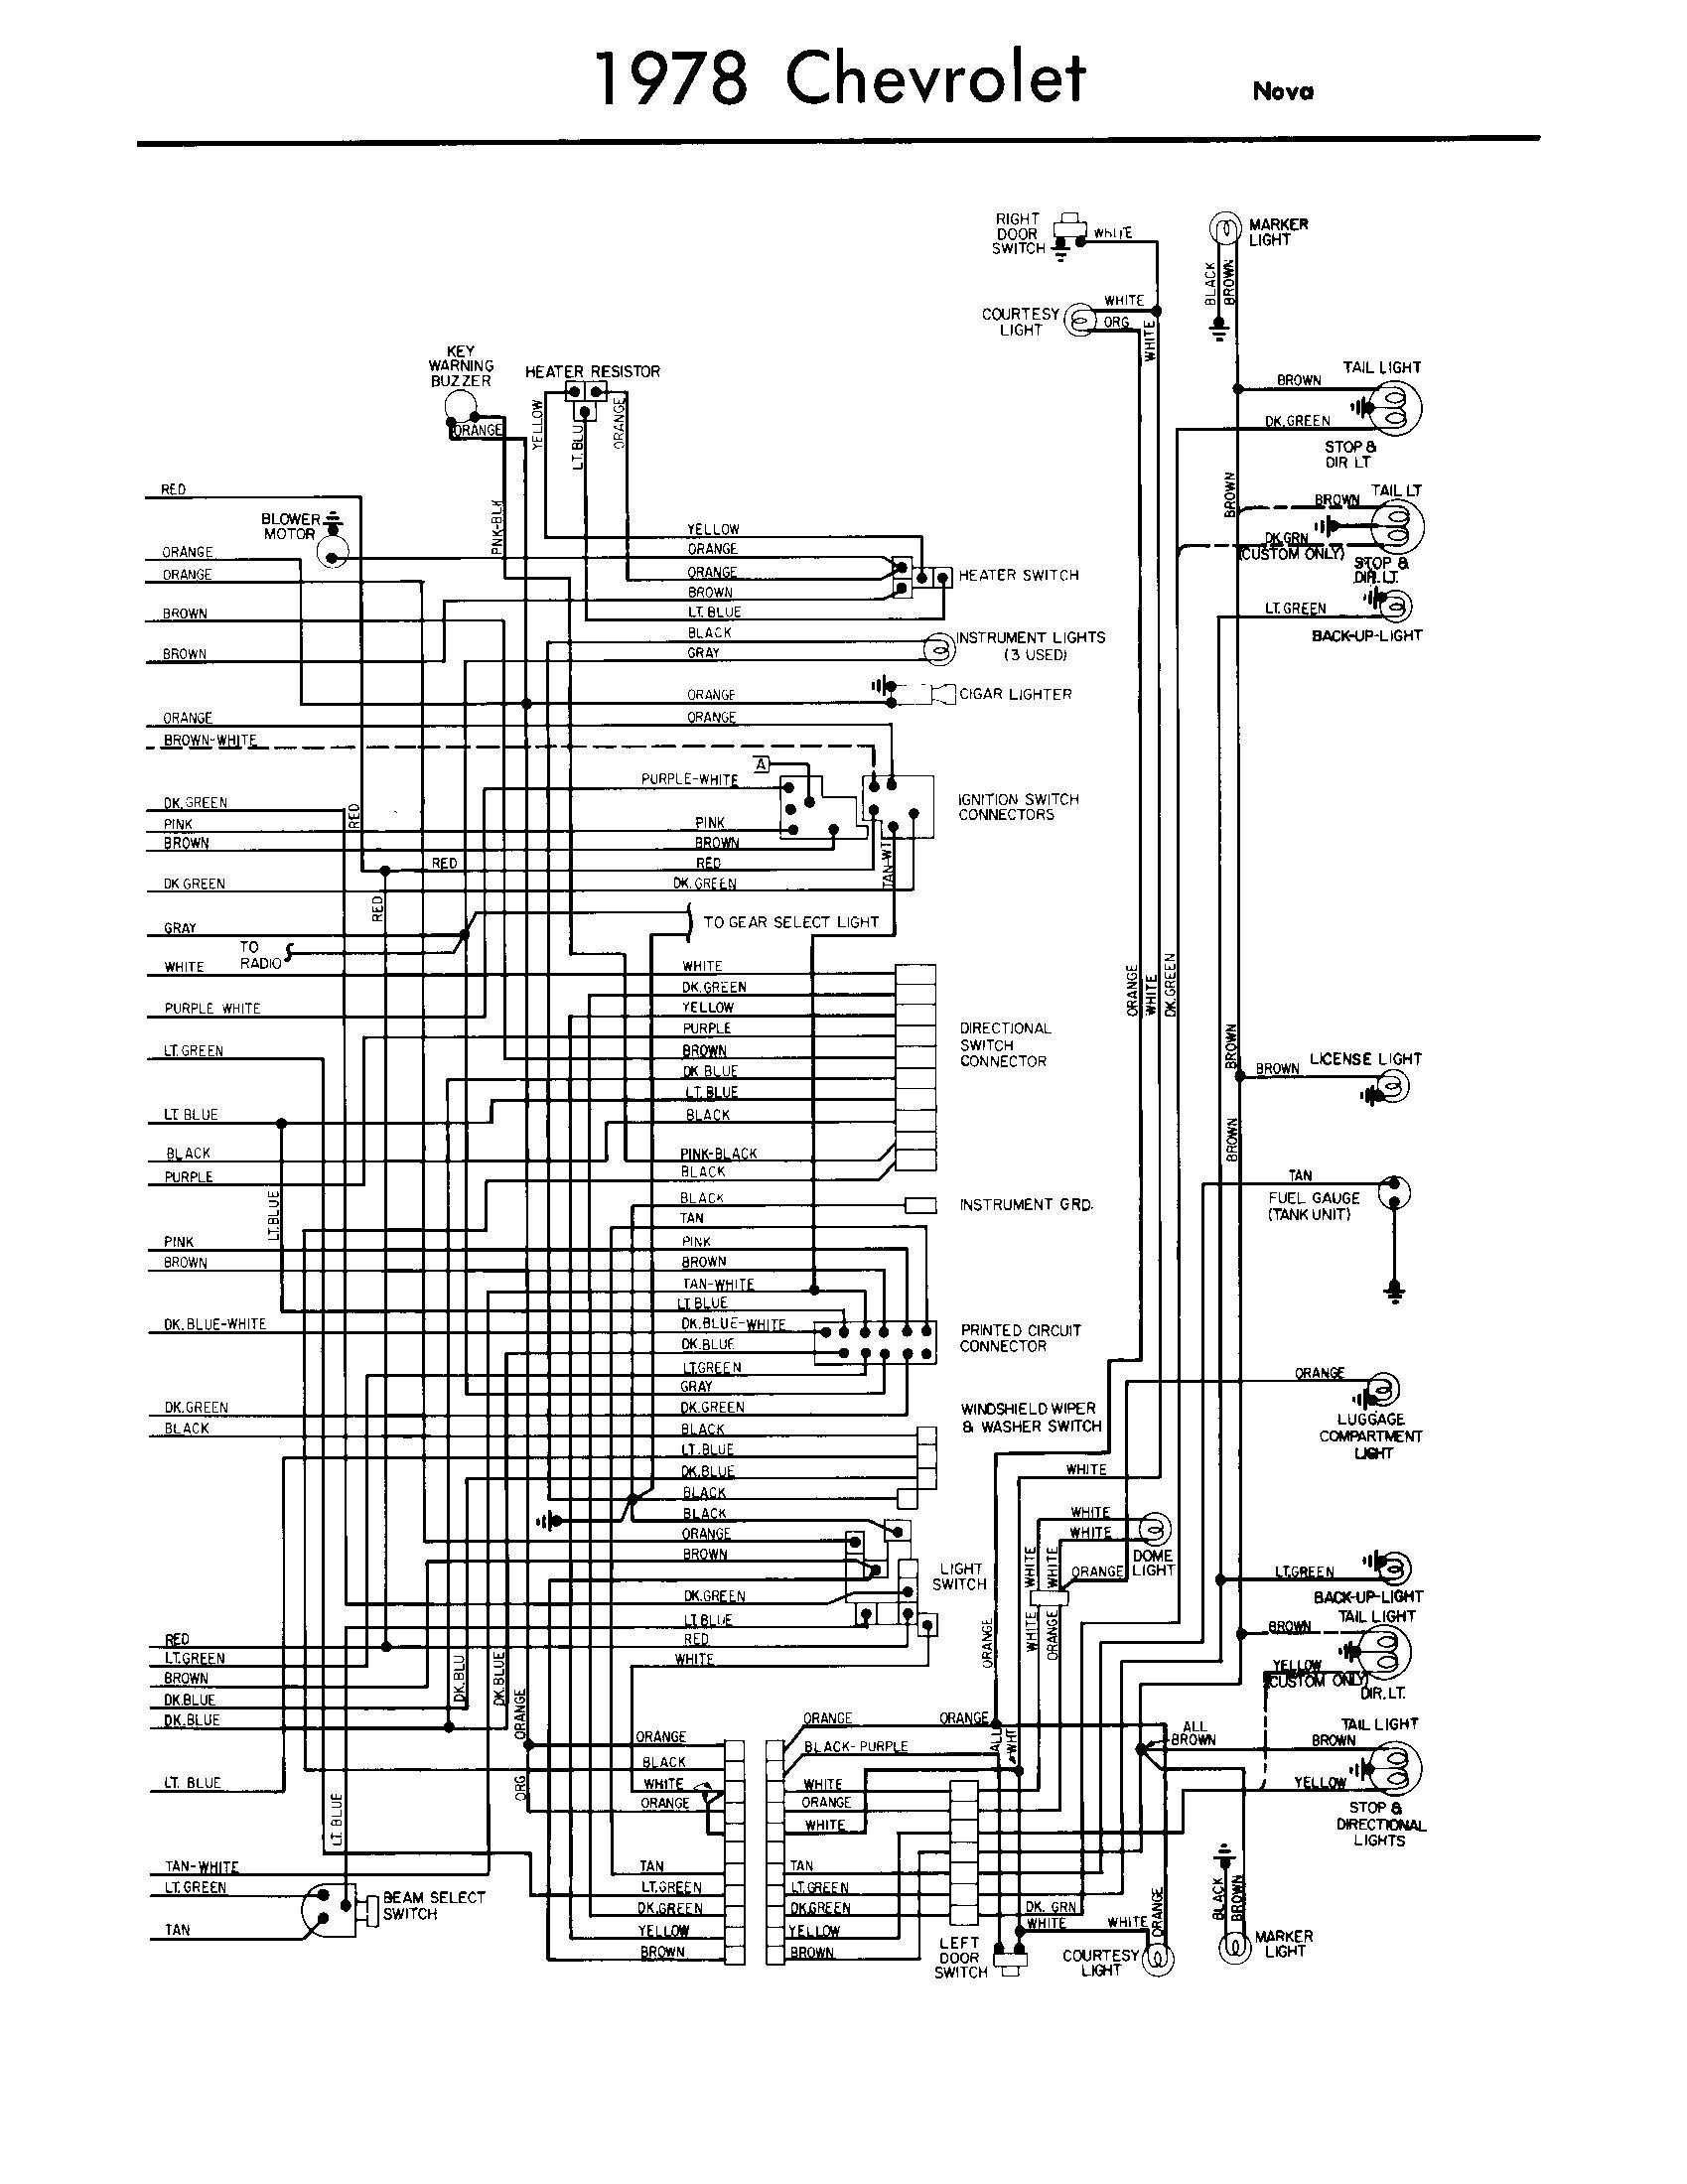 distributor wiring diagram 1978 chevy 350 basic guide wiring diagram u2022 rh wiringdiagramgroup today